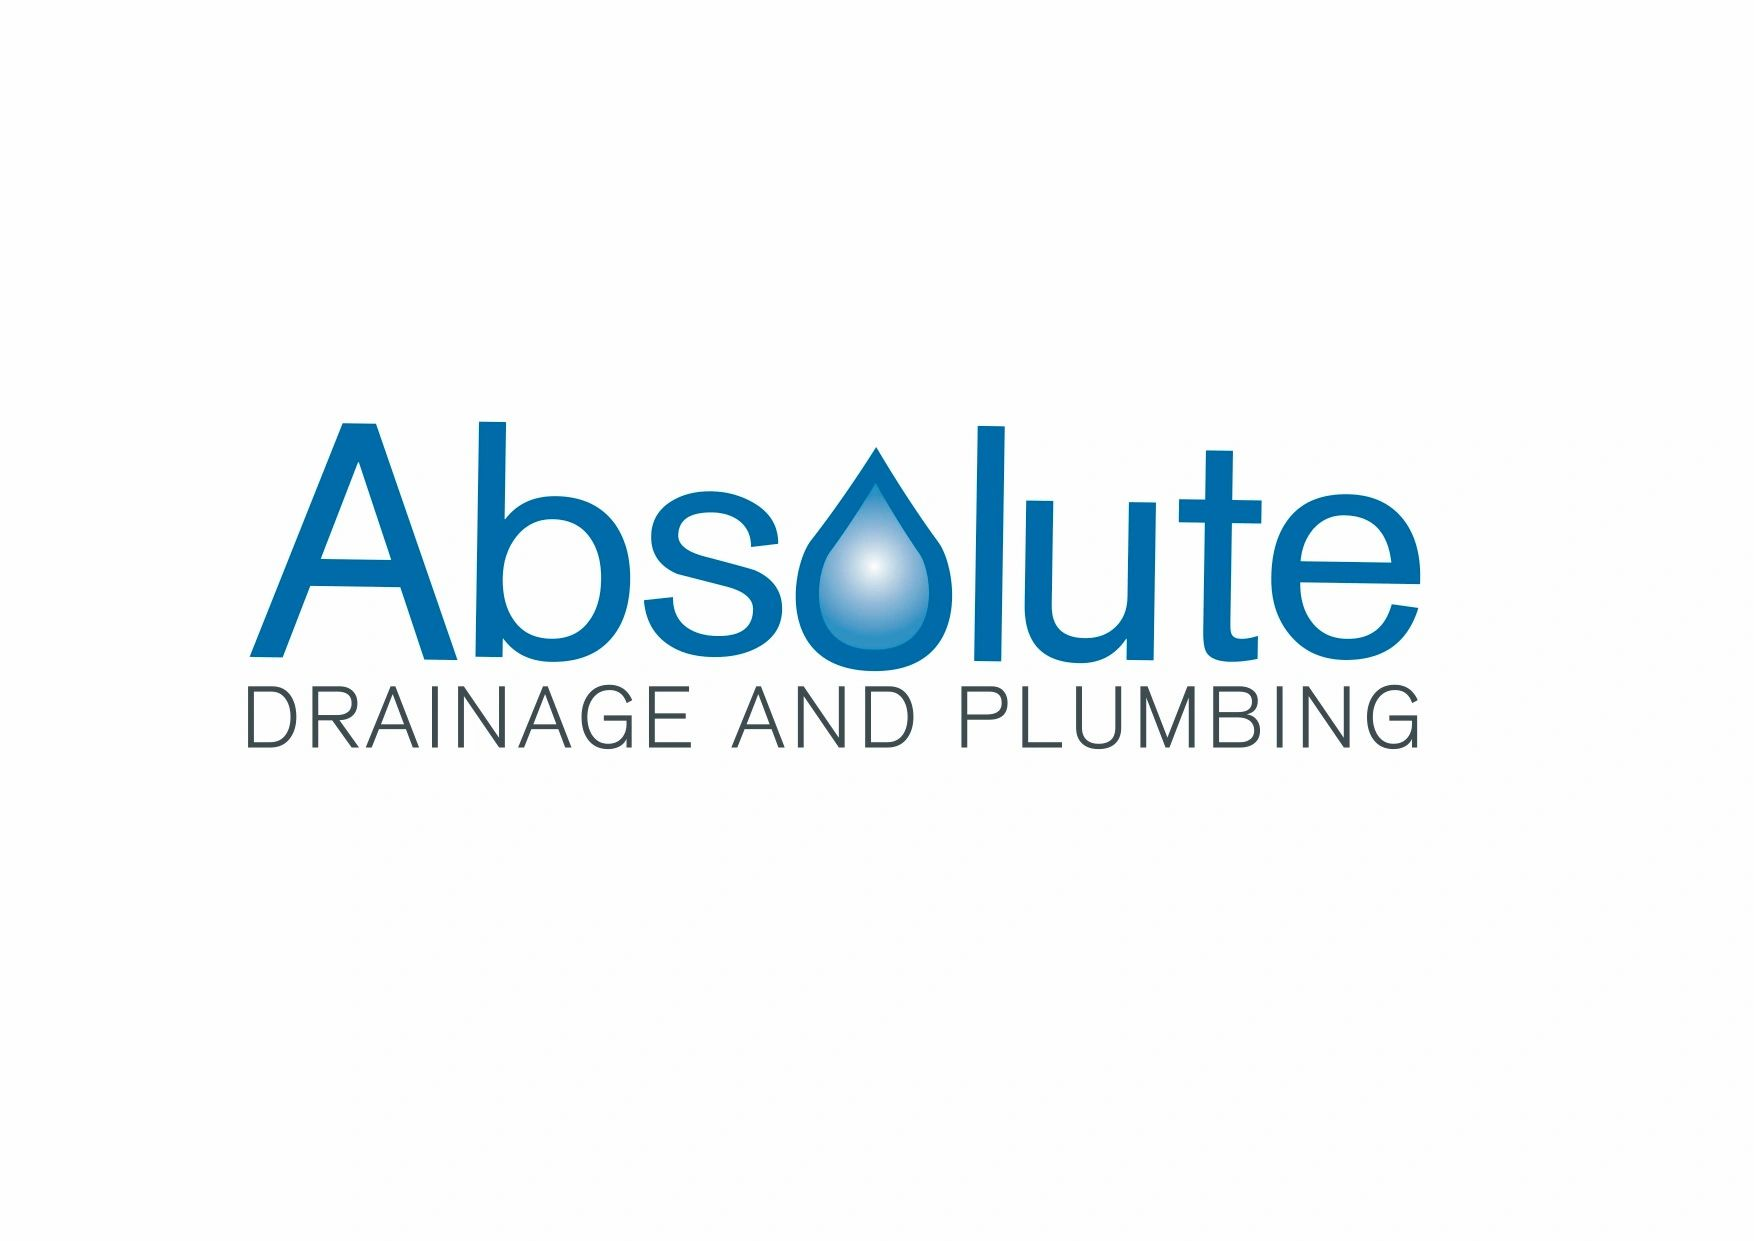 Drainage and Plumbing Services